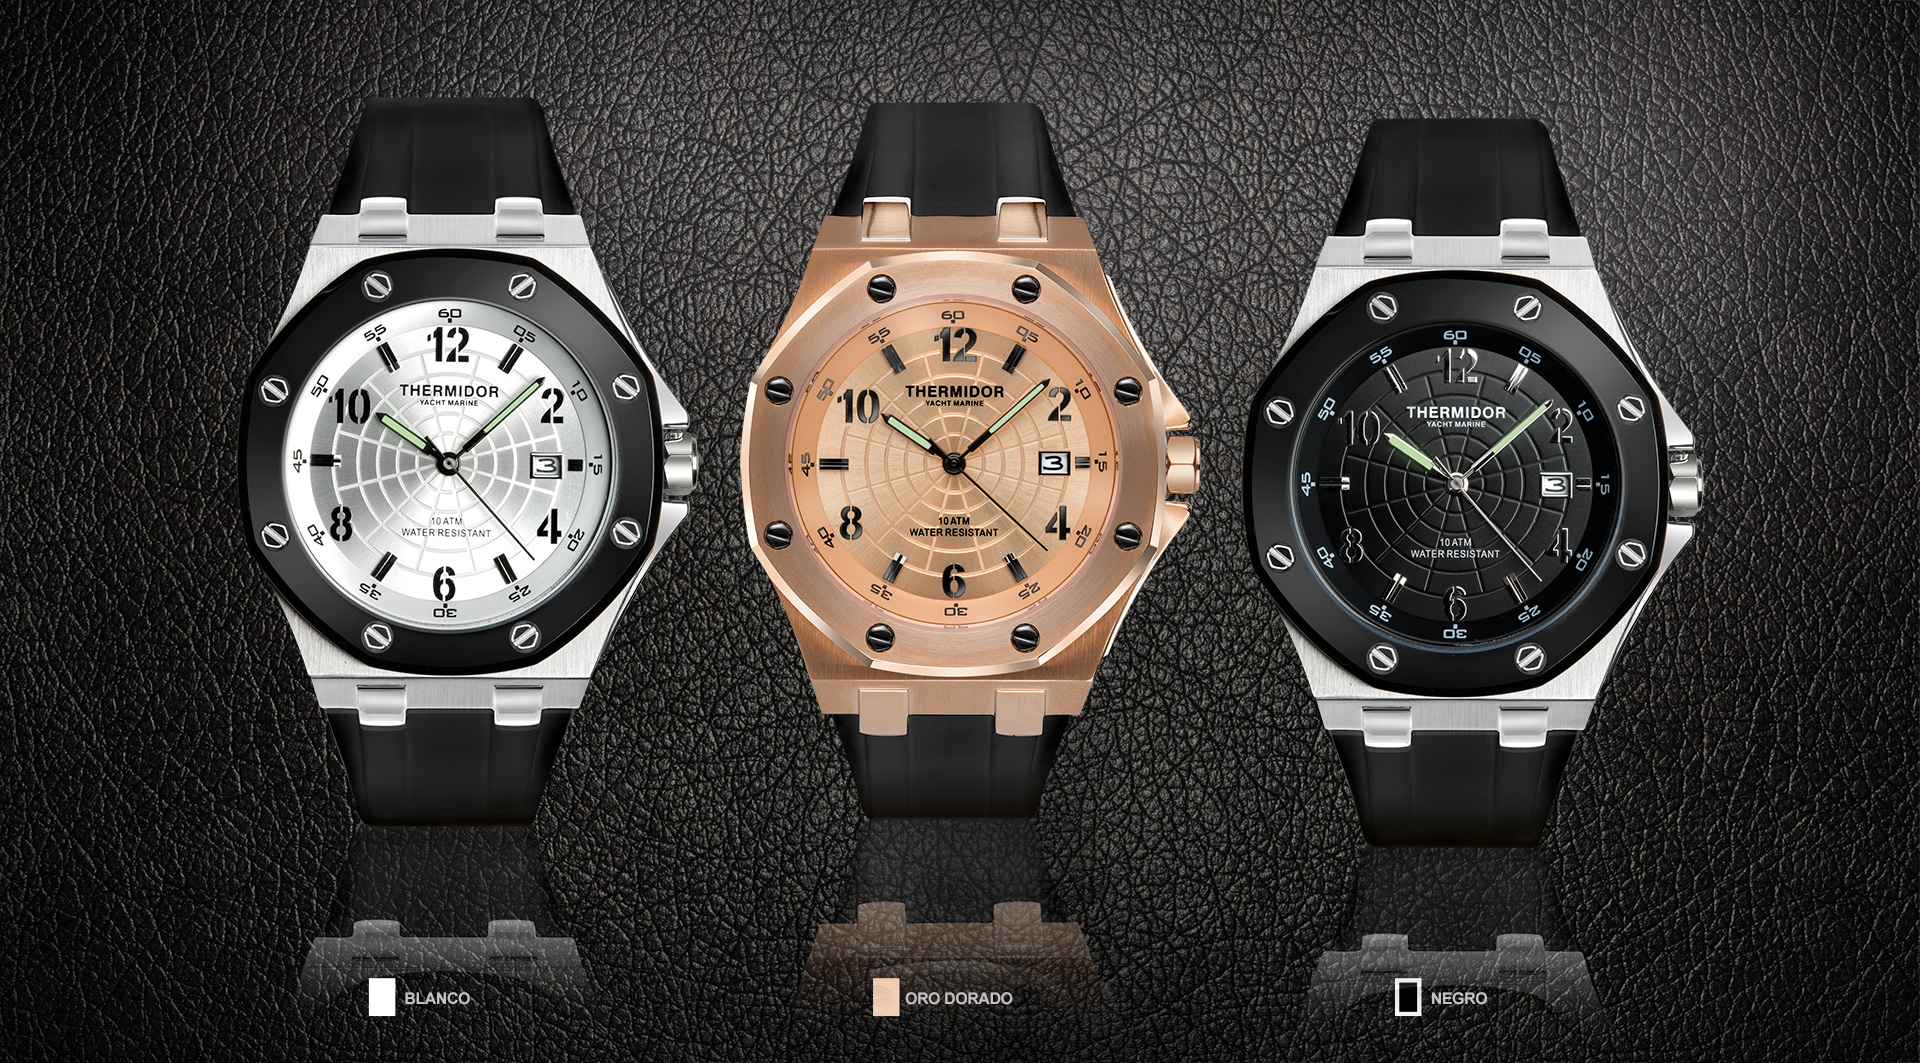 PRODUCTOS LUFTHOUS - RELOJES - THERMIDOR - RELOJES YACHT MARINE - LUFTHOUS